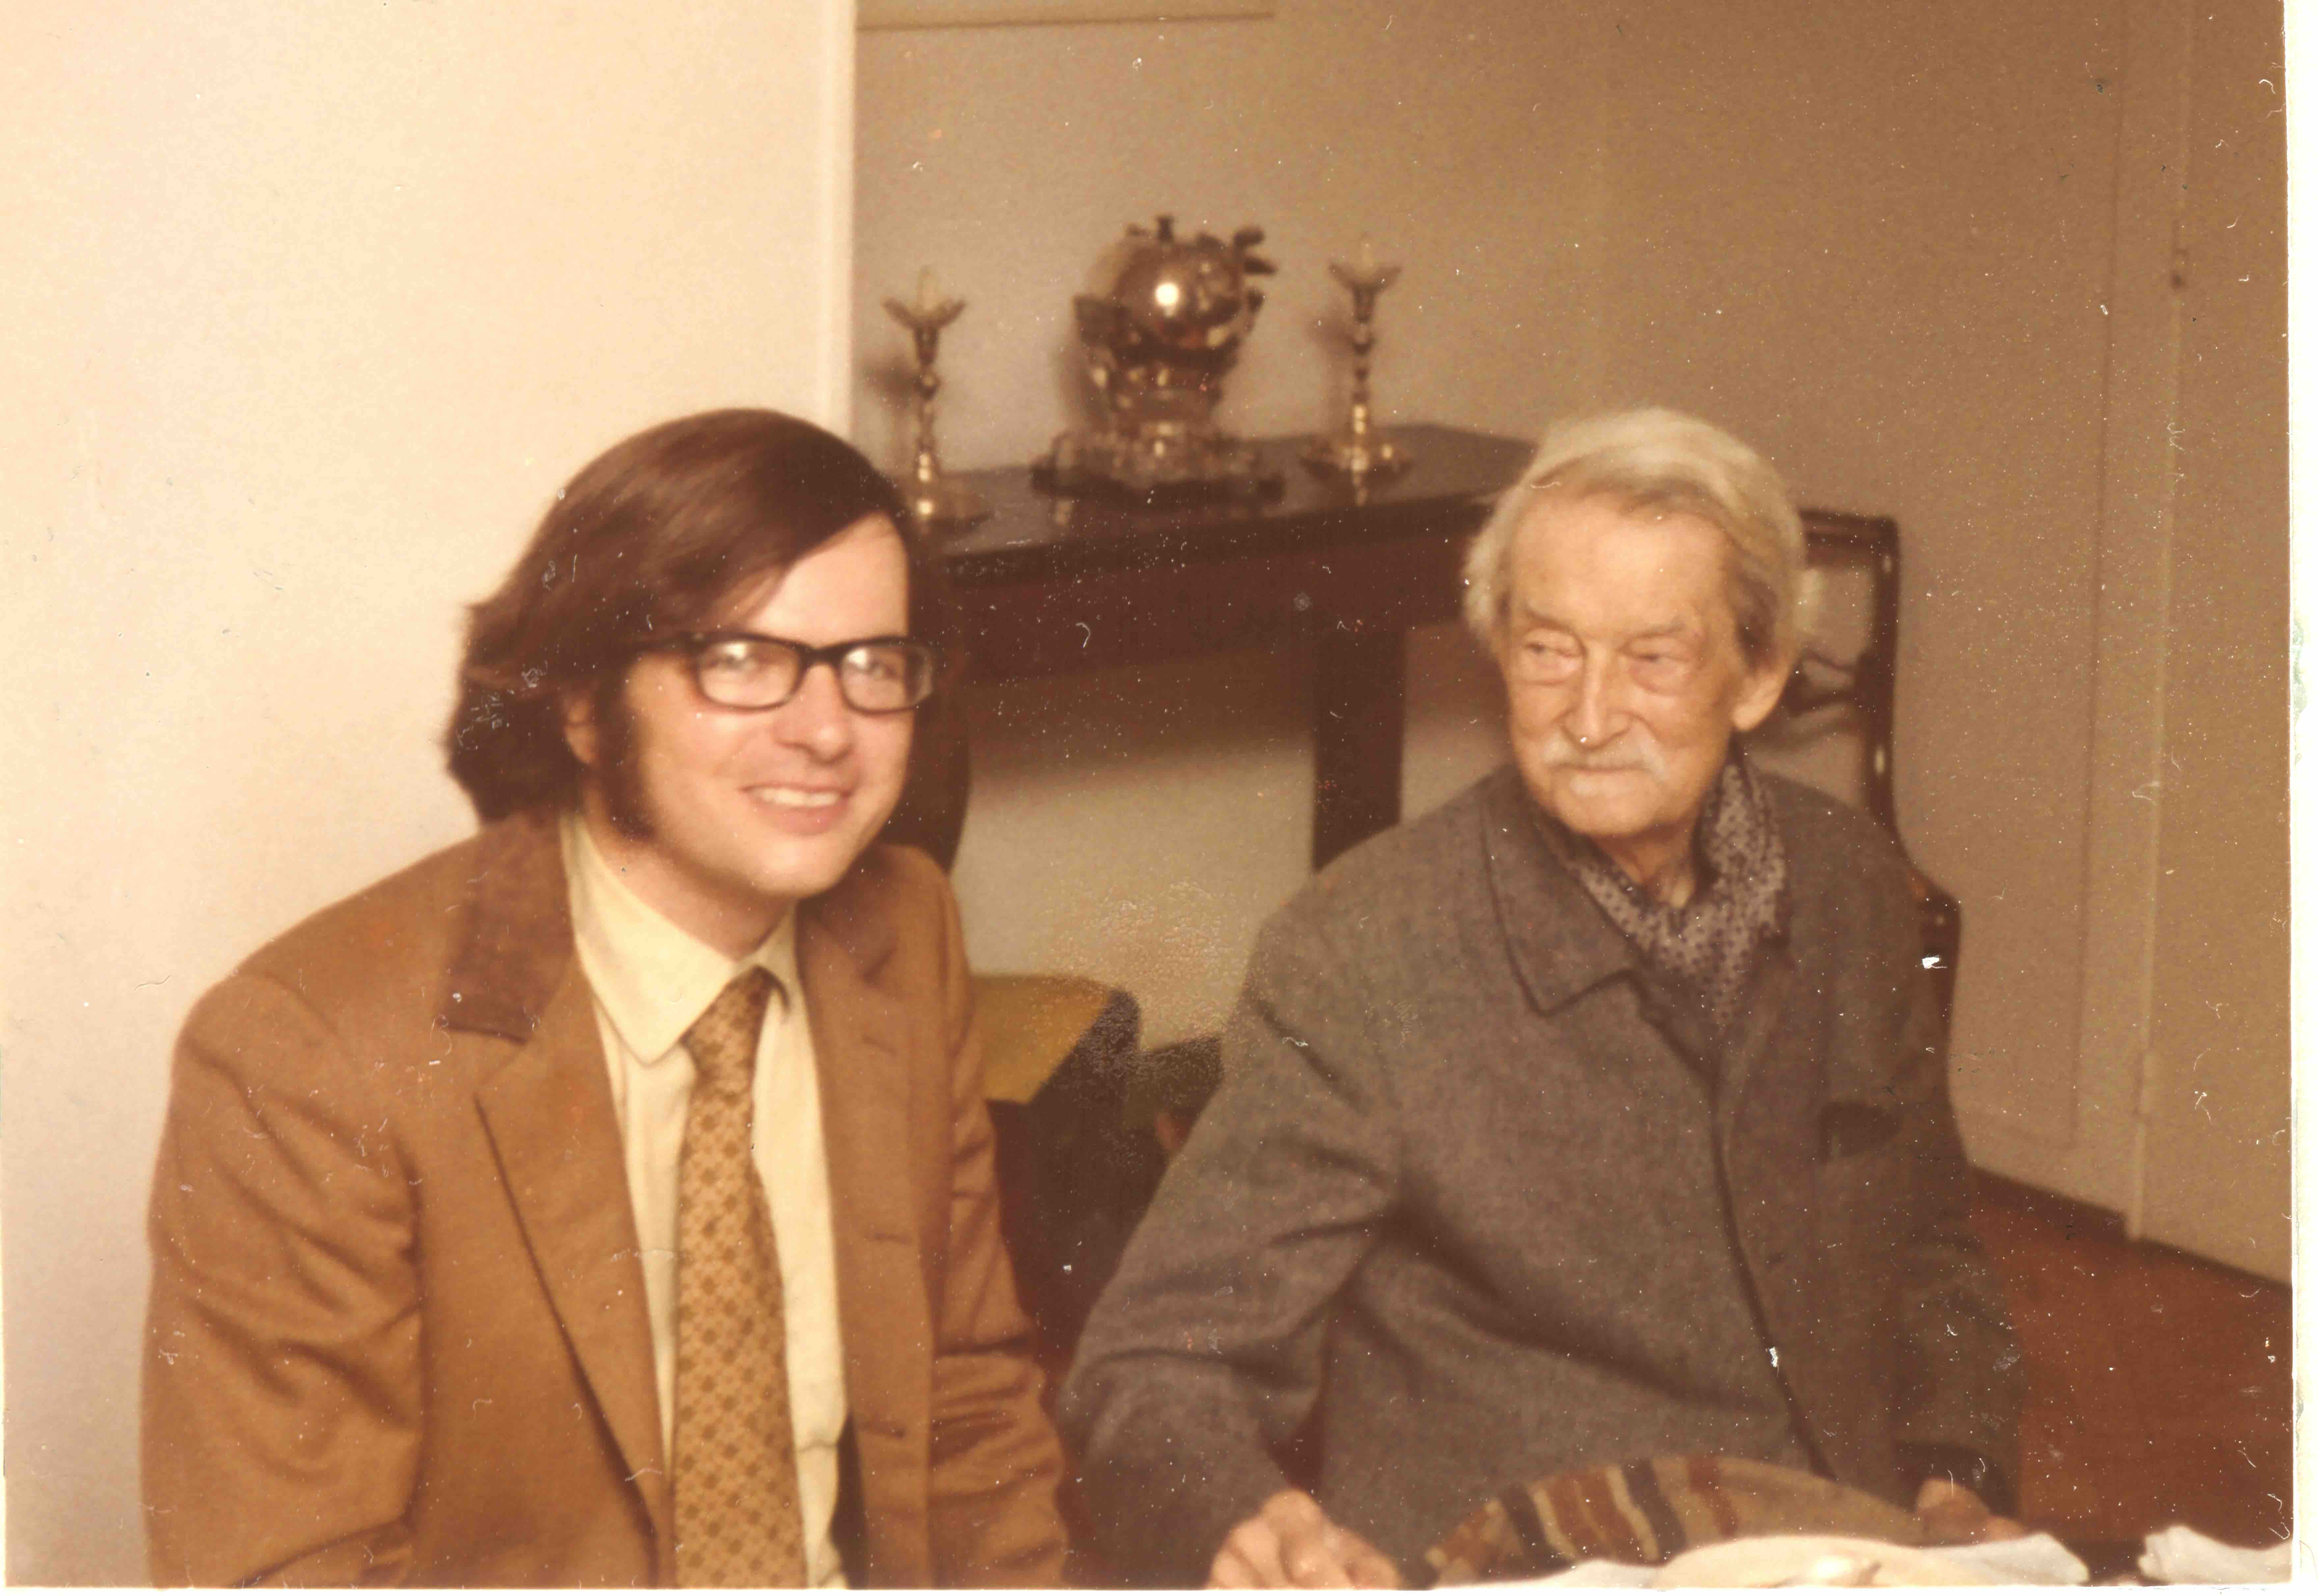 The history behind the John Deely and Jacques Maritain Chair in Philosophy at Saint Vincent College includes a young John Deely (left) meeting with Jacques Maritain in Kolbsheim, France, on July 20, 1972. (Photo courtesy of Brooke Deely)